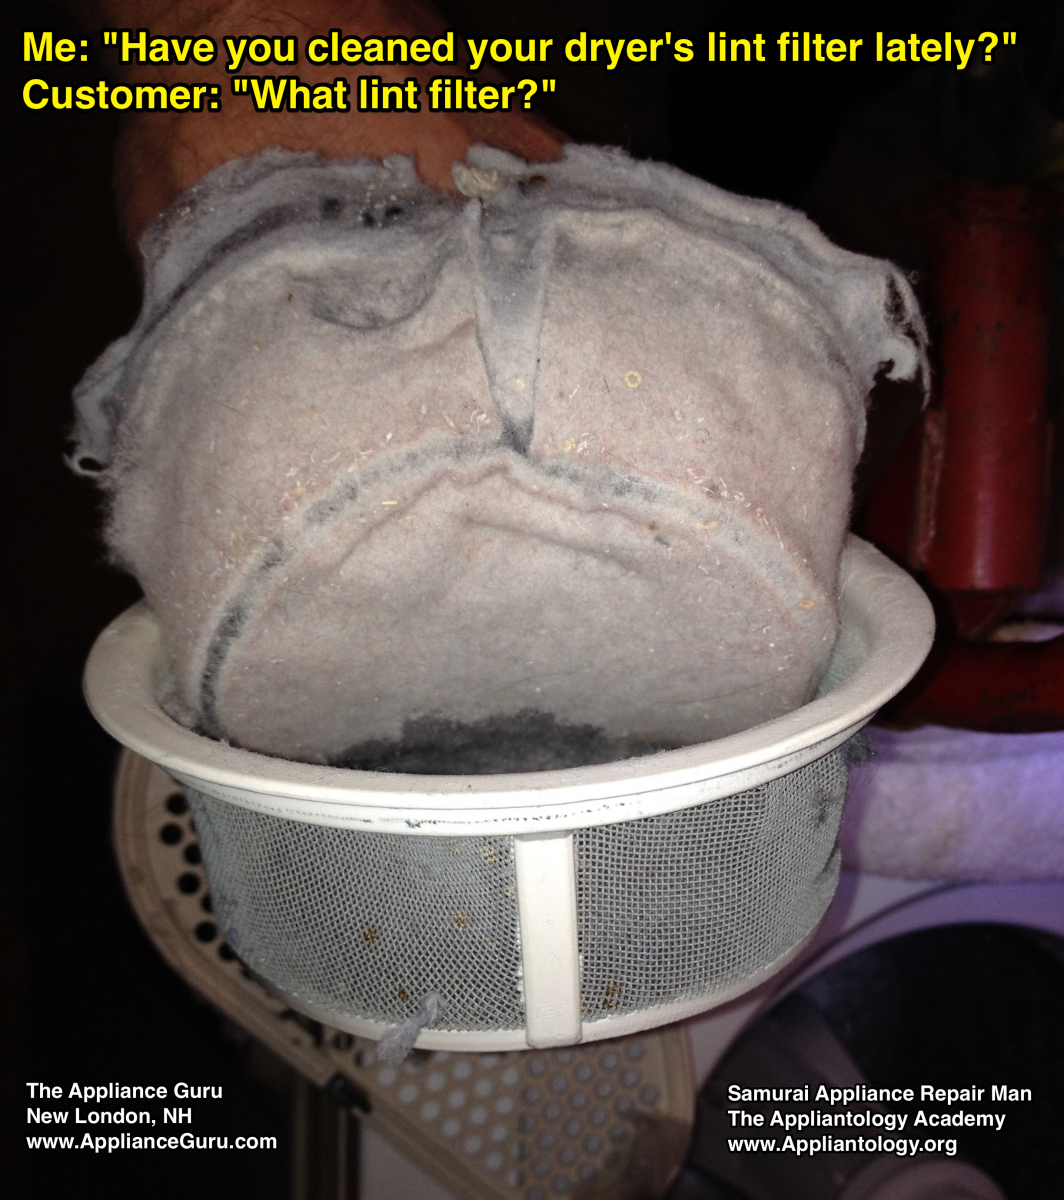 Have you cleaned your dryer's lint filter lately?